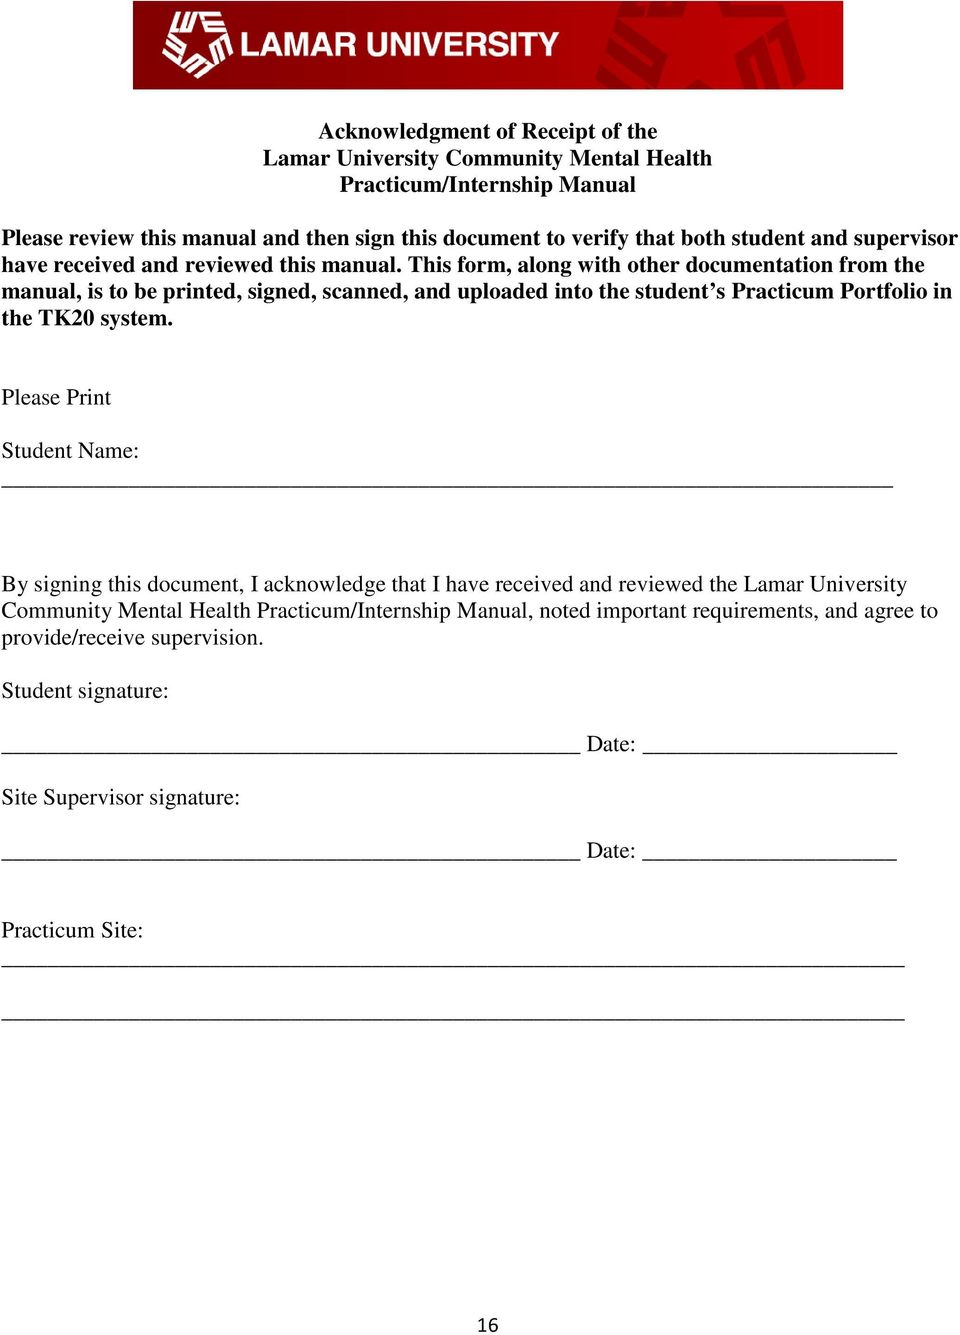 This form, along with other documentation from the manual, is to be printed, signed, scanned, and uploaded into the student s Practicum Portfolio in the TK20 system.